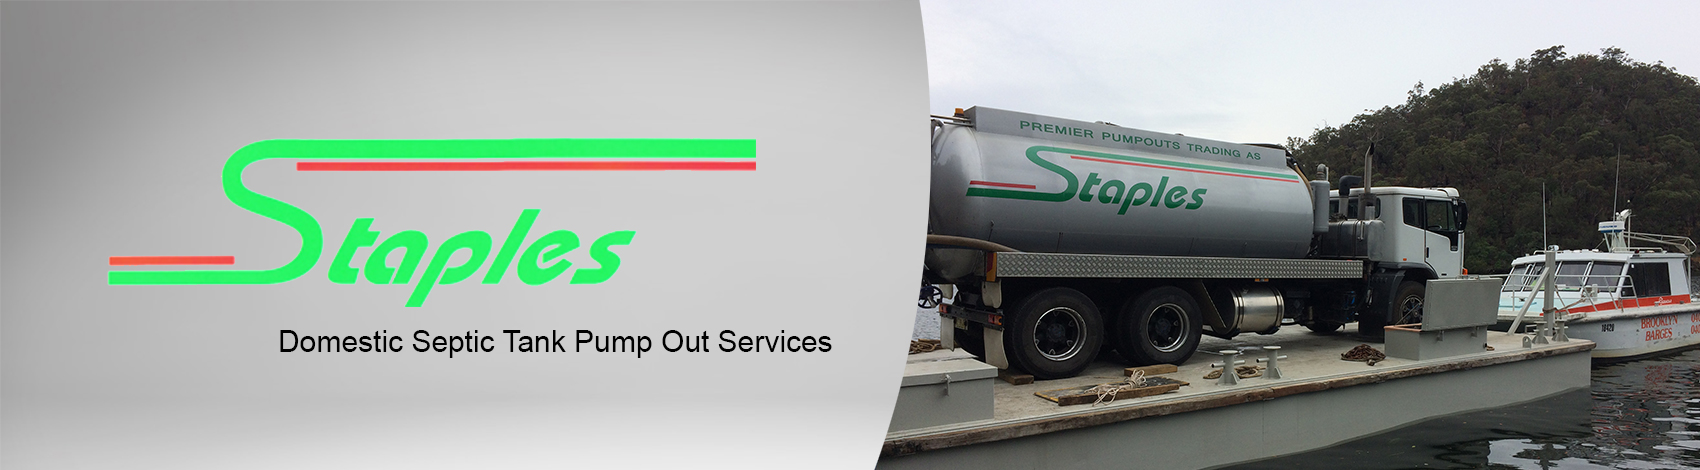 Staples Bros - Domestic Septic Tank Pump Out Services